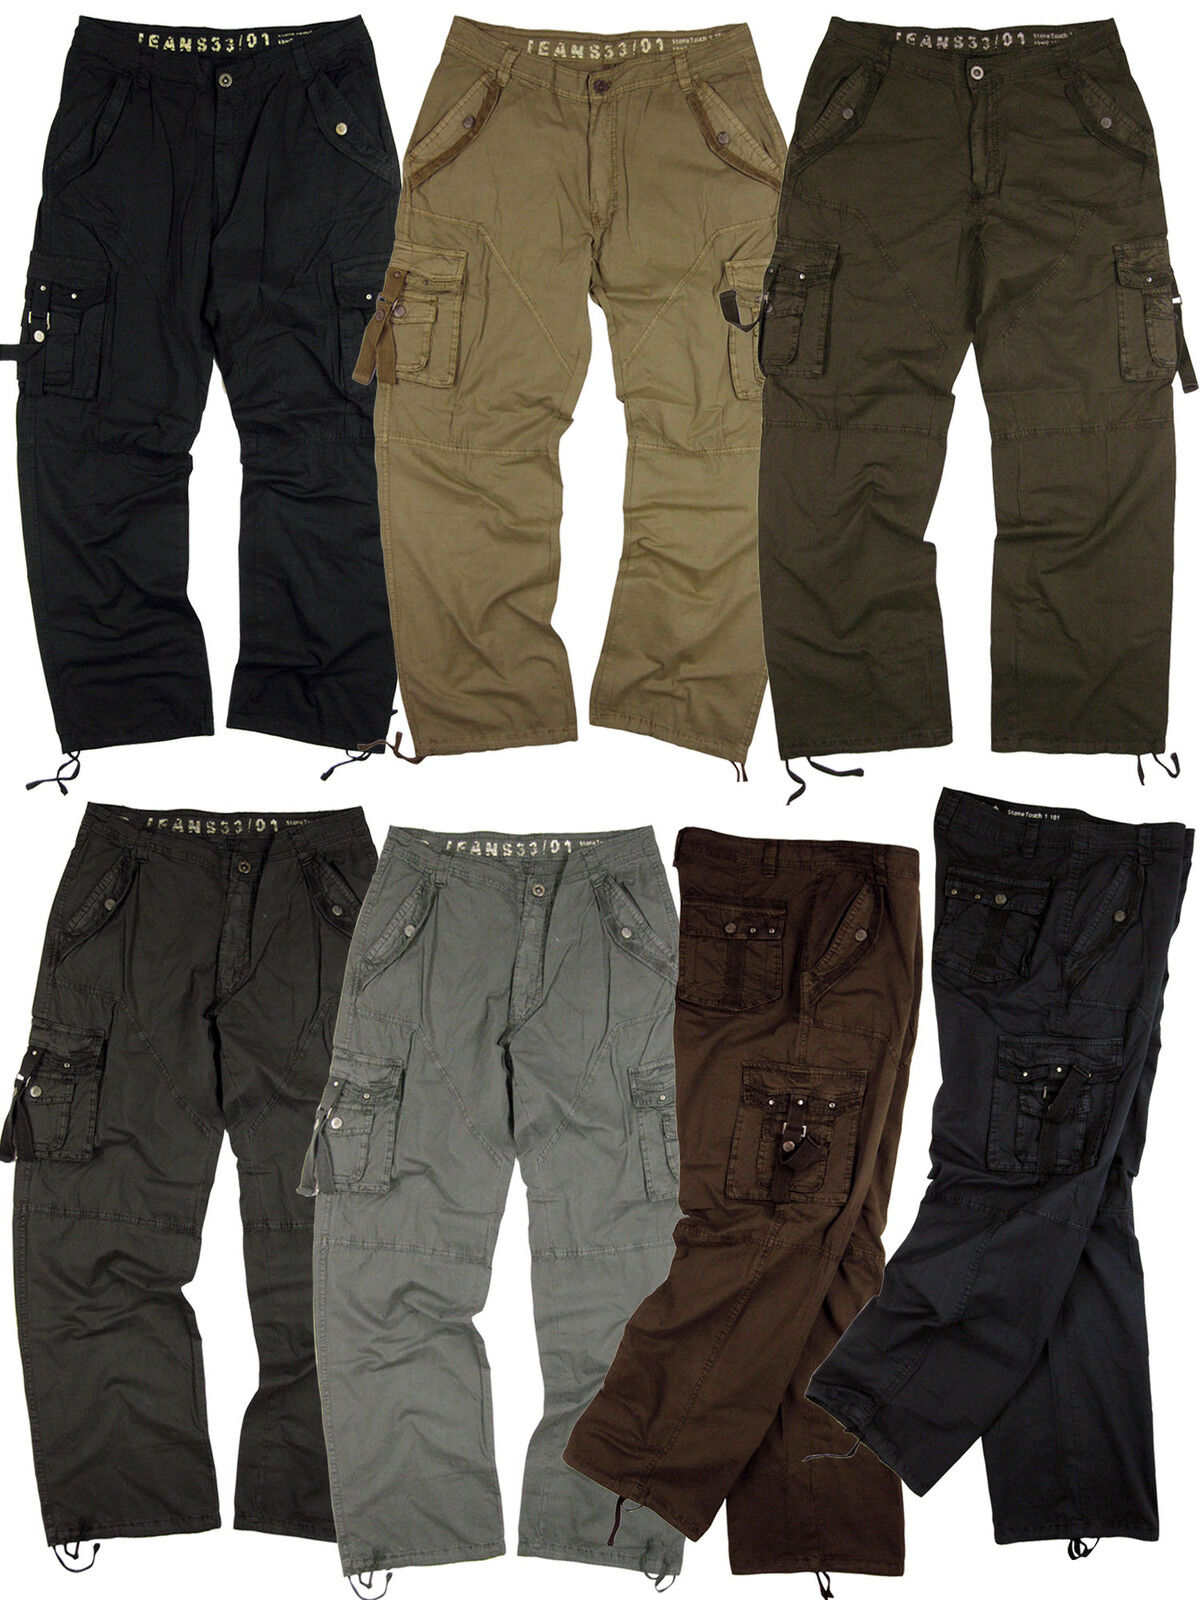 Mens Lightweight Military-Style Cargo Pants Sizes 32 to 46  A8